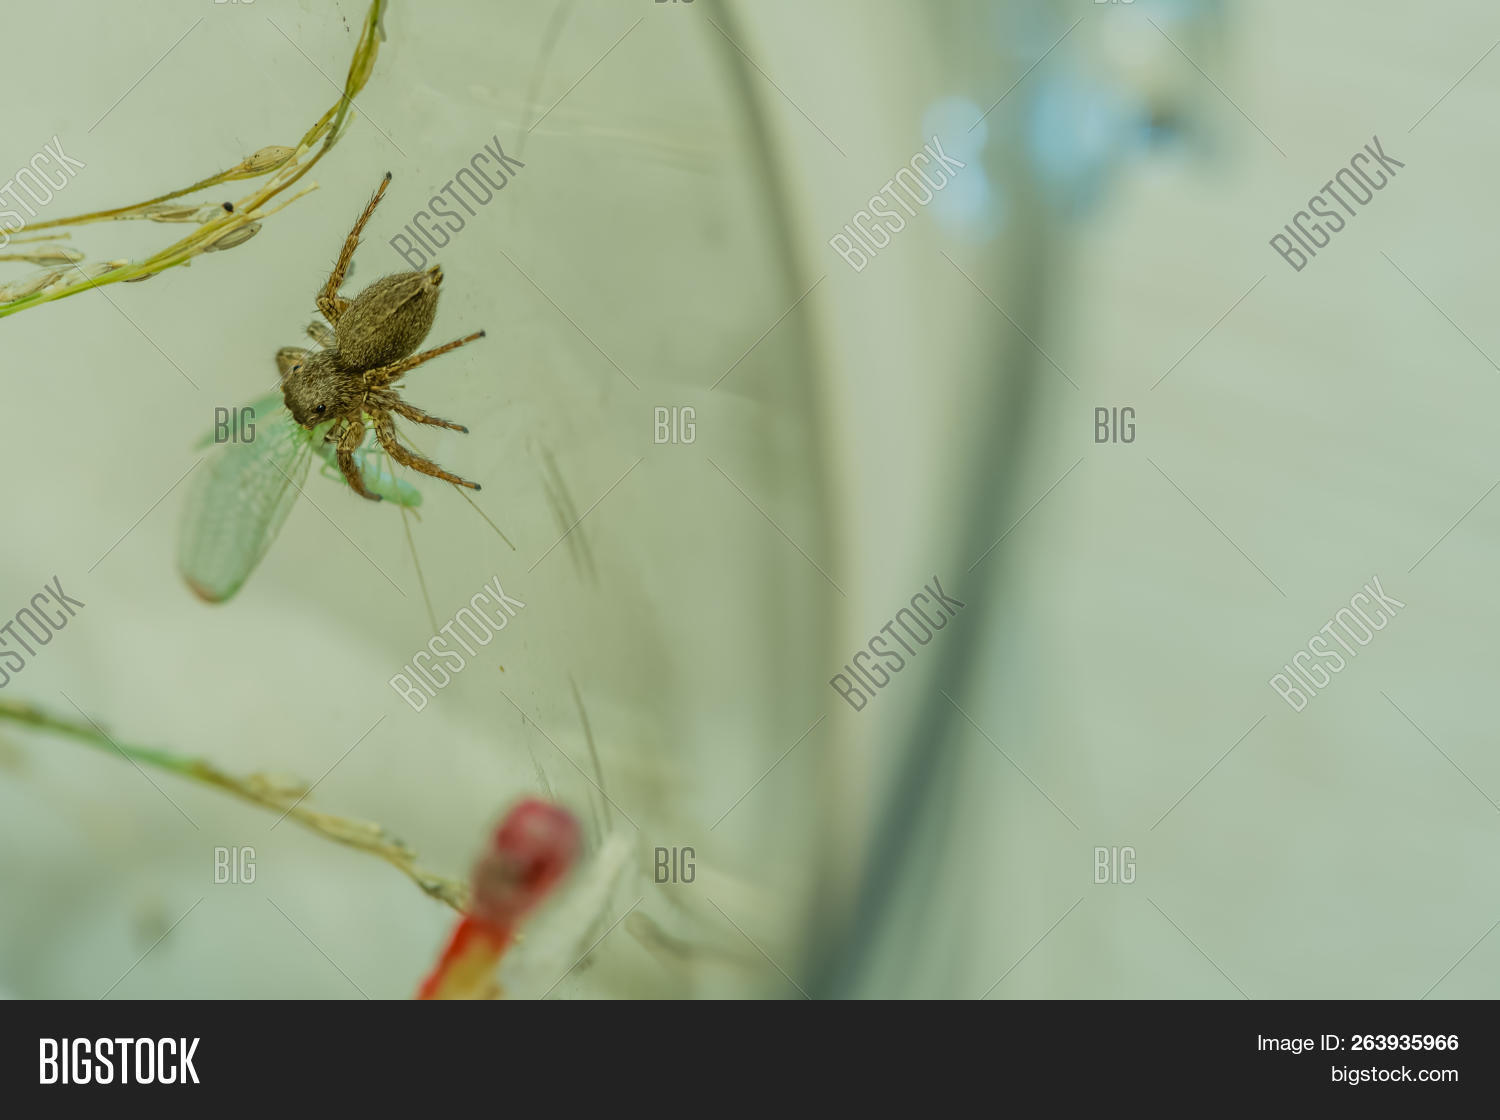 Jumping Spider Feeding Image & Photo (Free Trial) | Bigstock